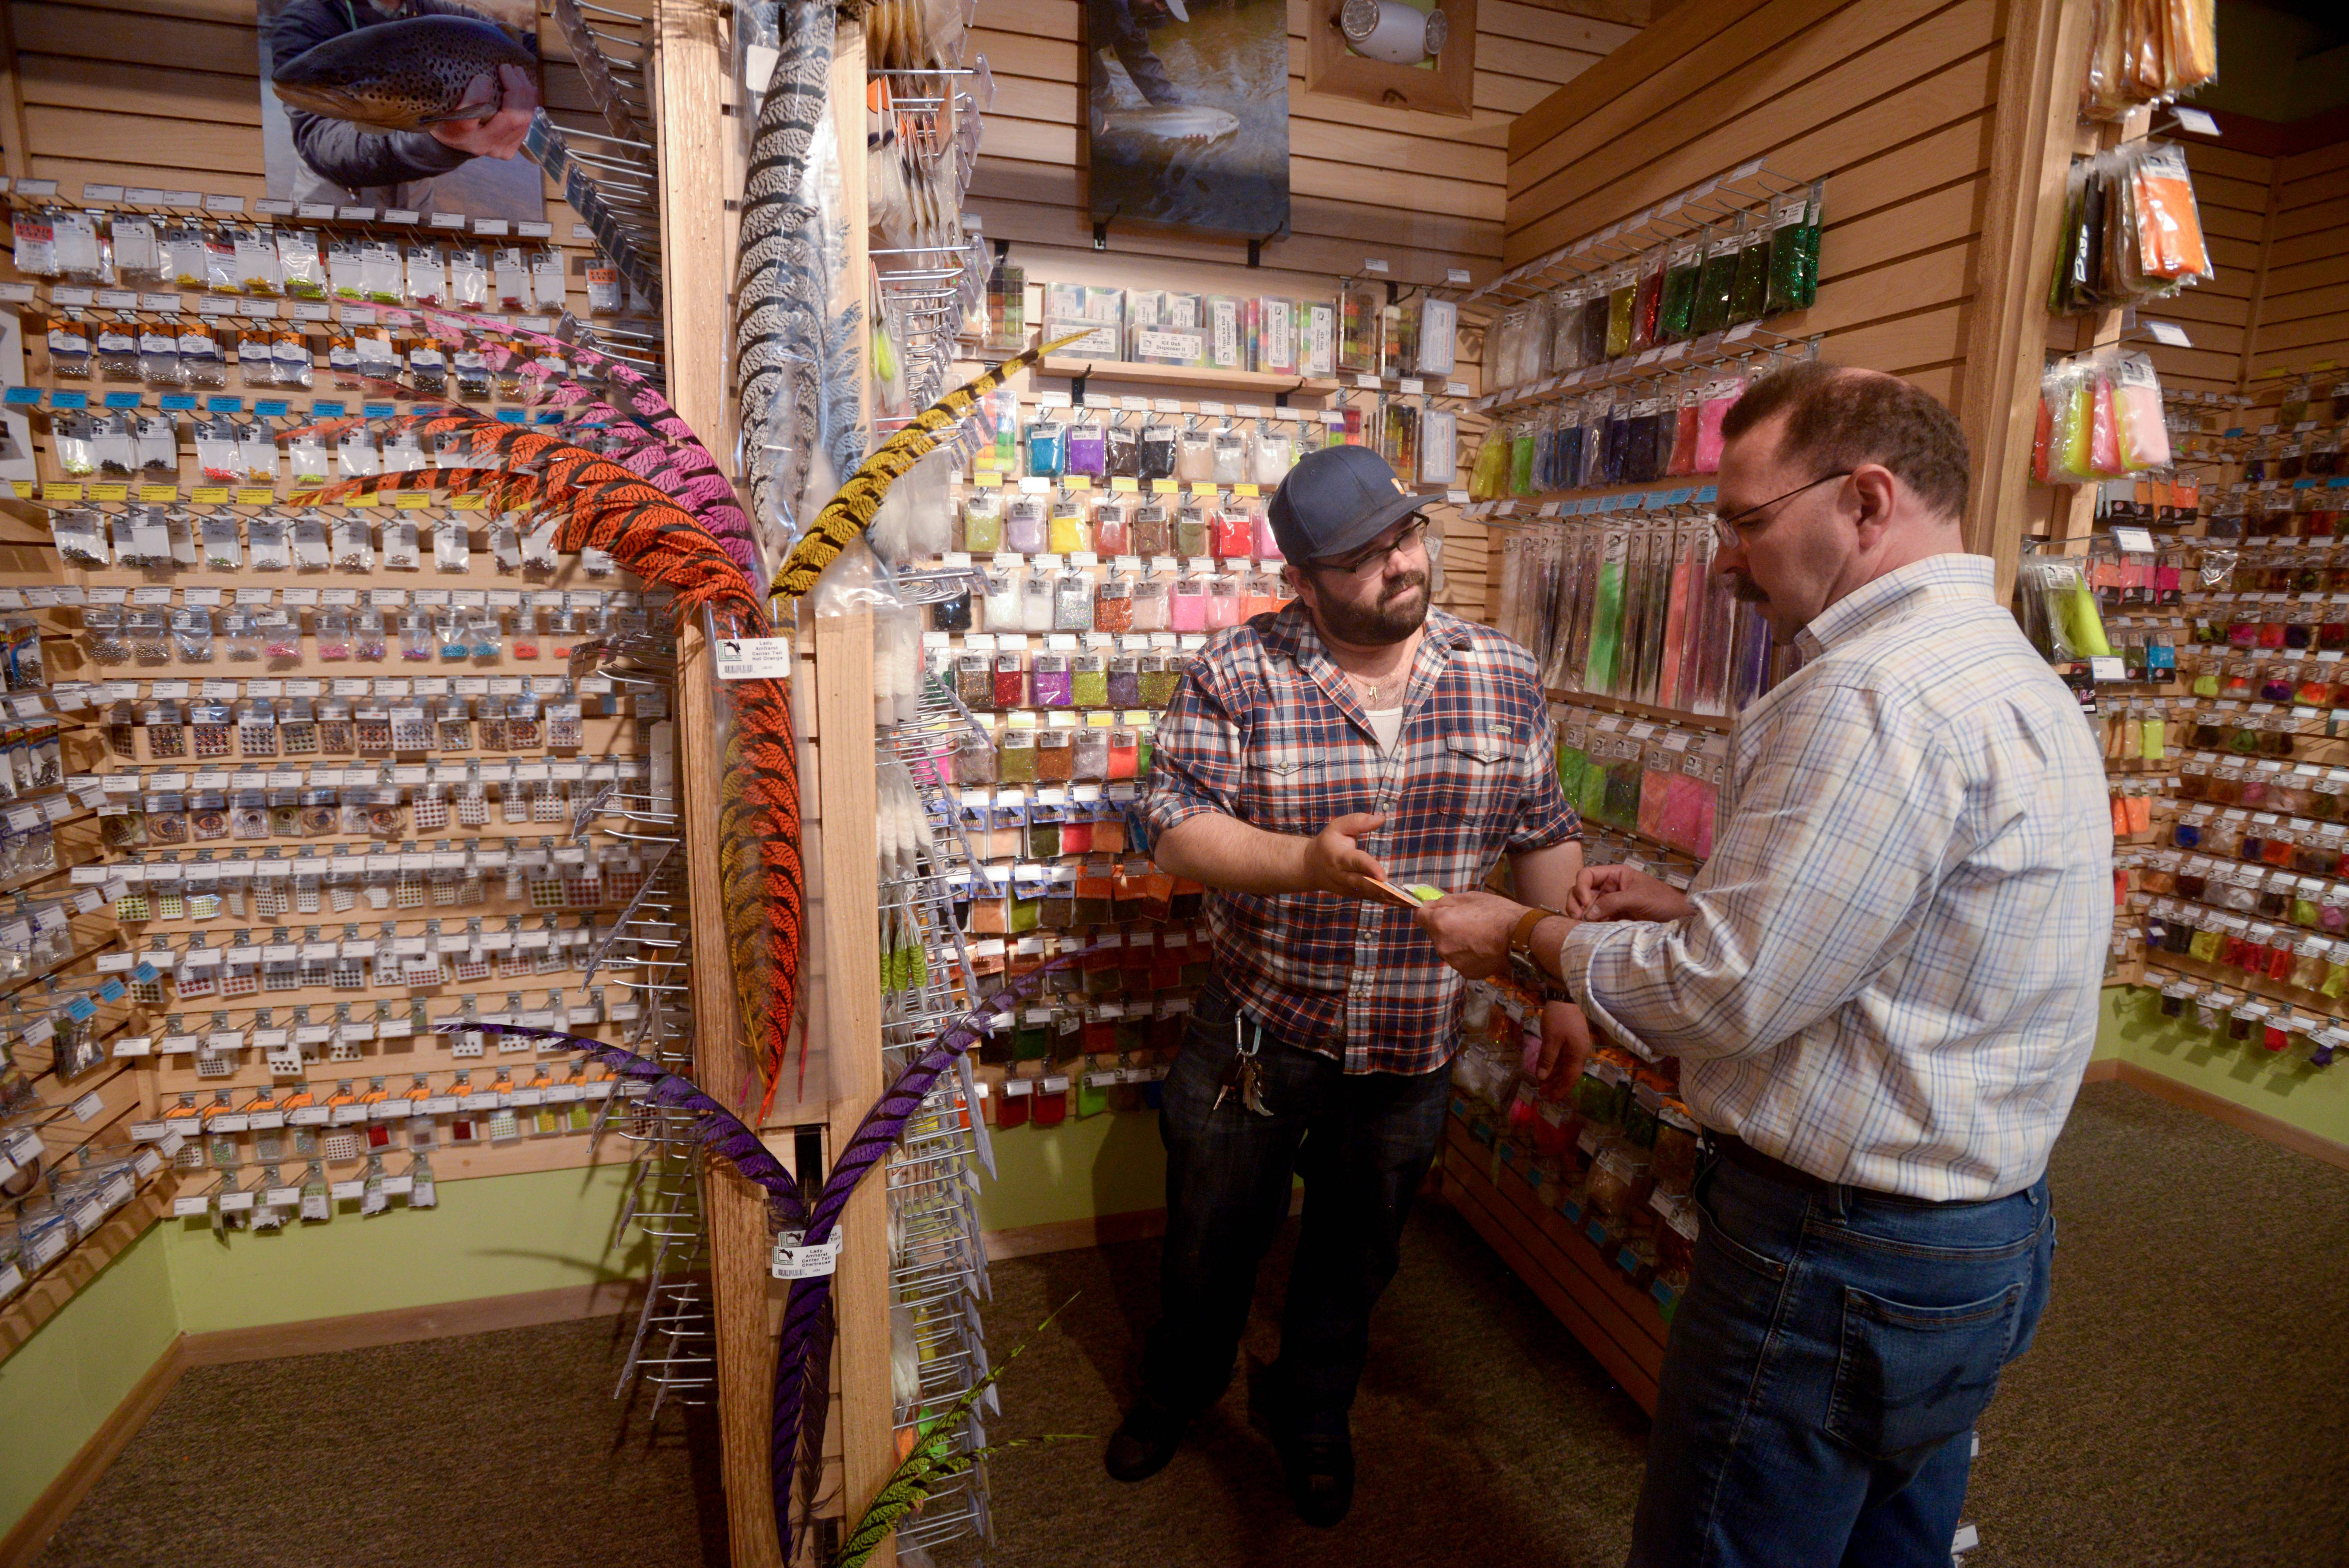 Jeremy Spaccapaniccia of DuPage Fly Fishing Co. in Naperville talks with former fly tying student Chris Camp of Naperville as he searches for the right material for his flies.